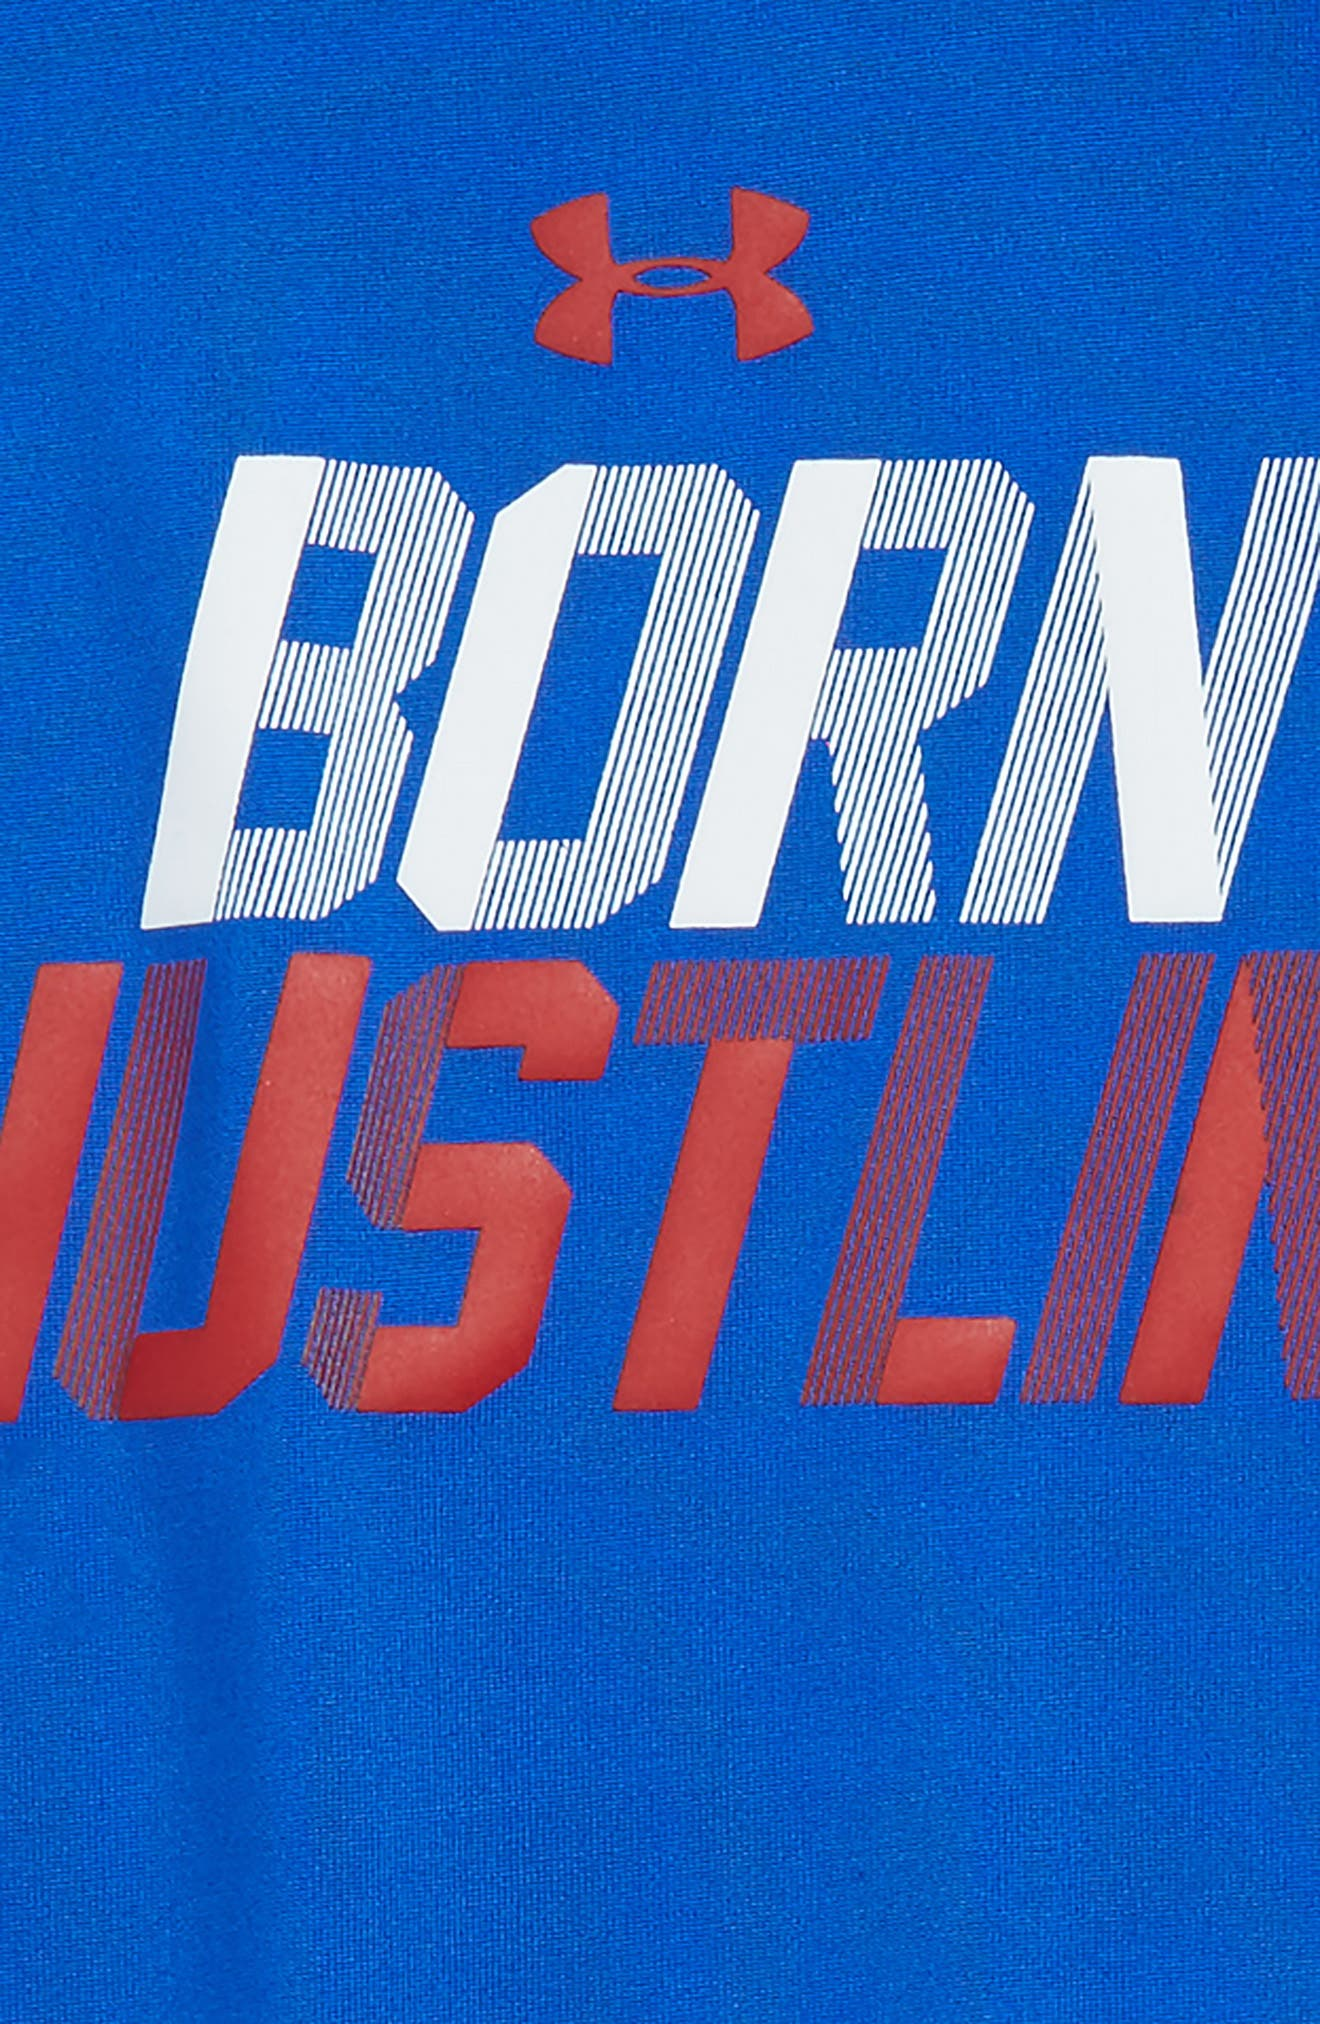 Born Hustlin T-Shirt & Shorts,                             Alternate thumbnail 2, color,                             420